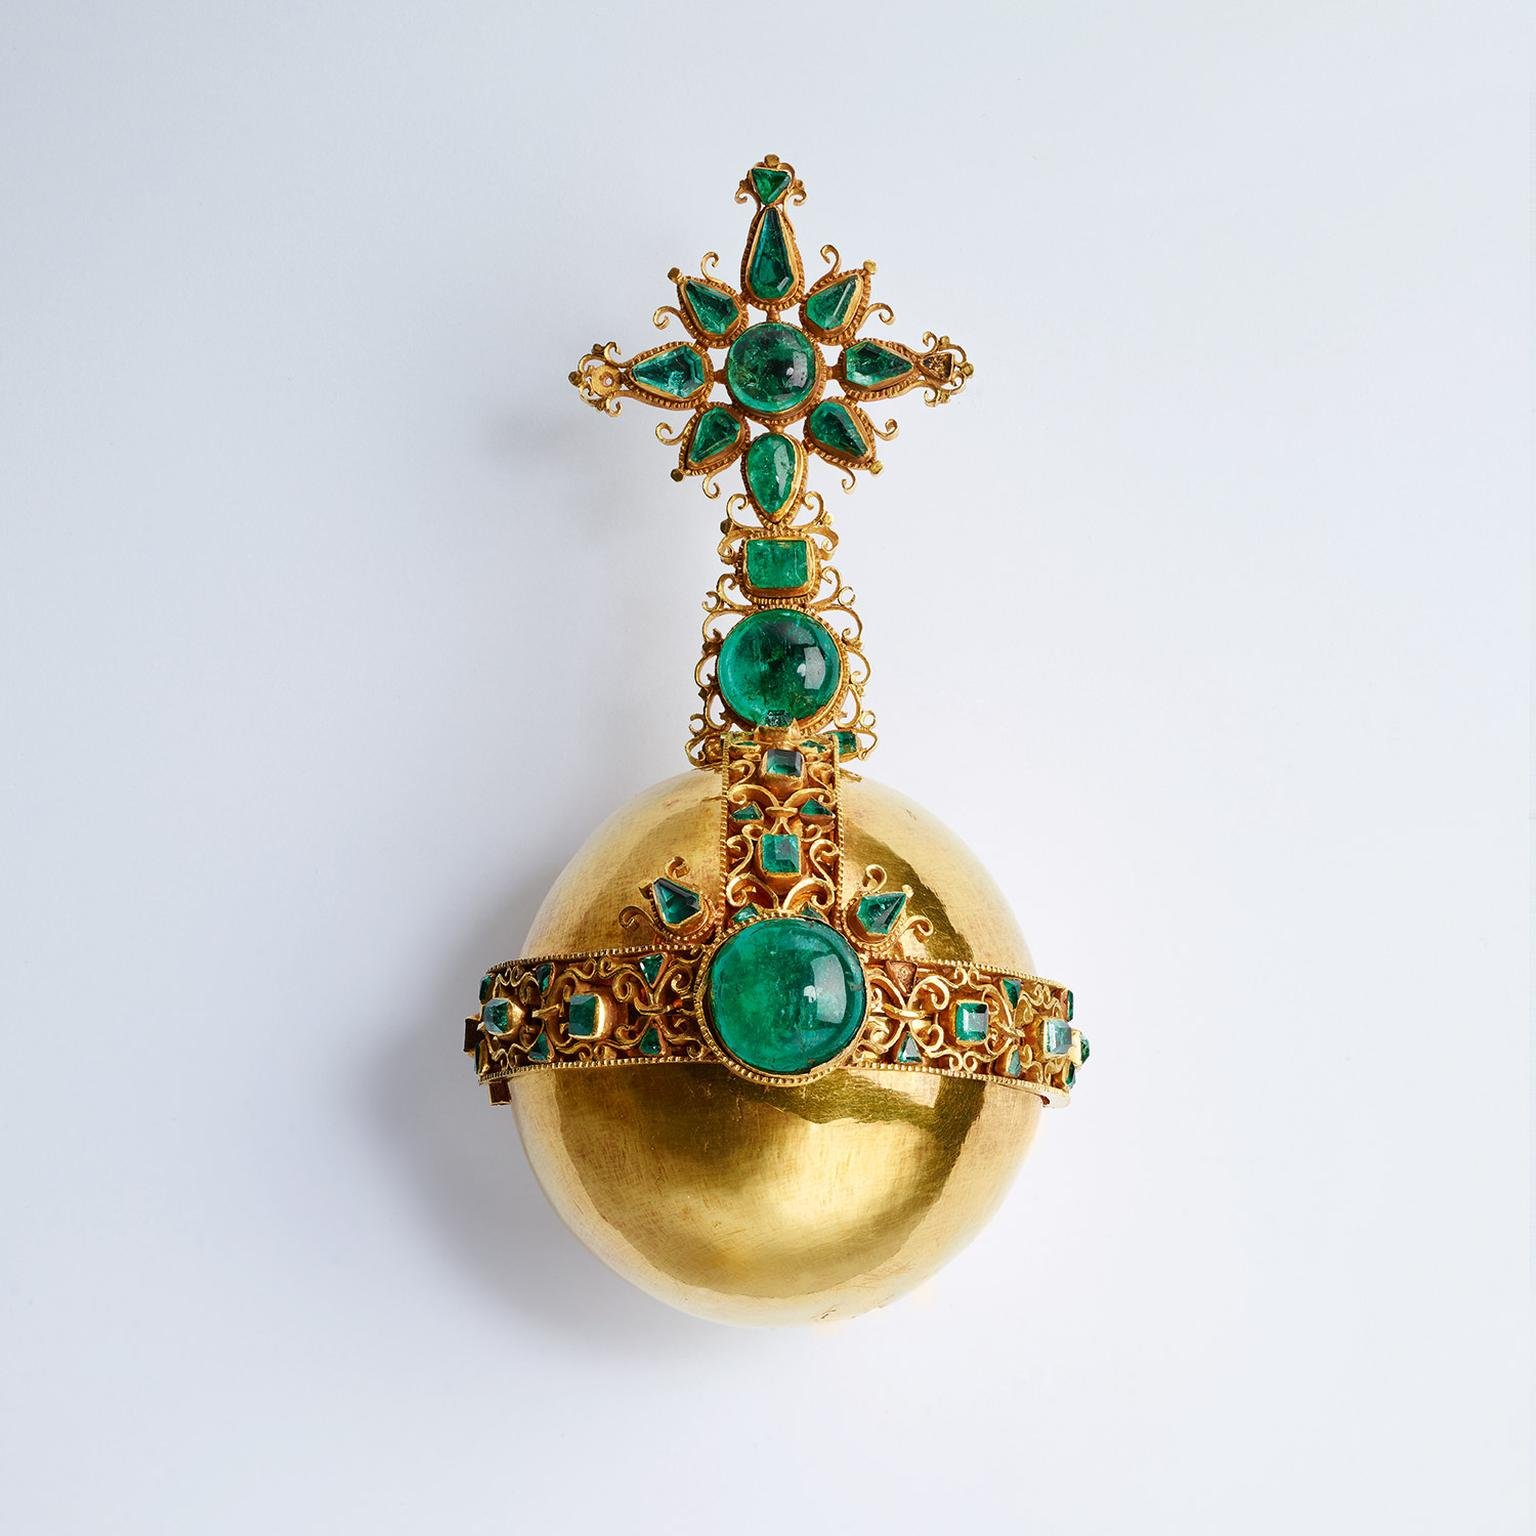 Royal Orb with Muzo Colombian emeralds